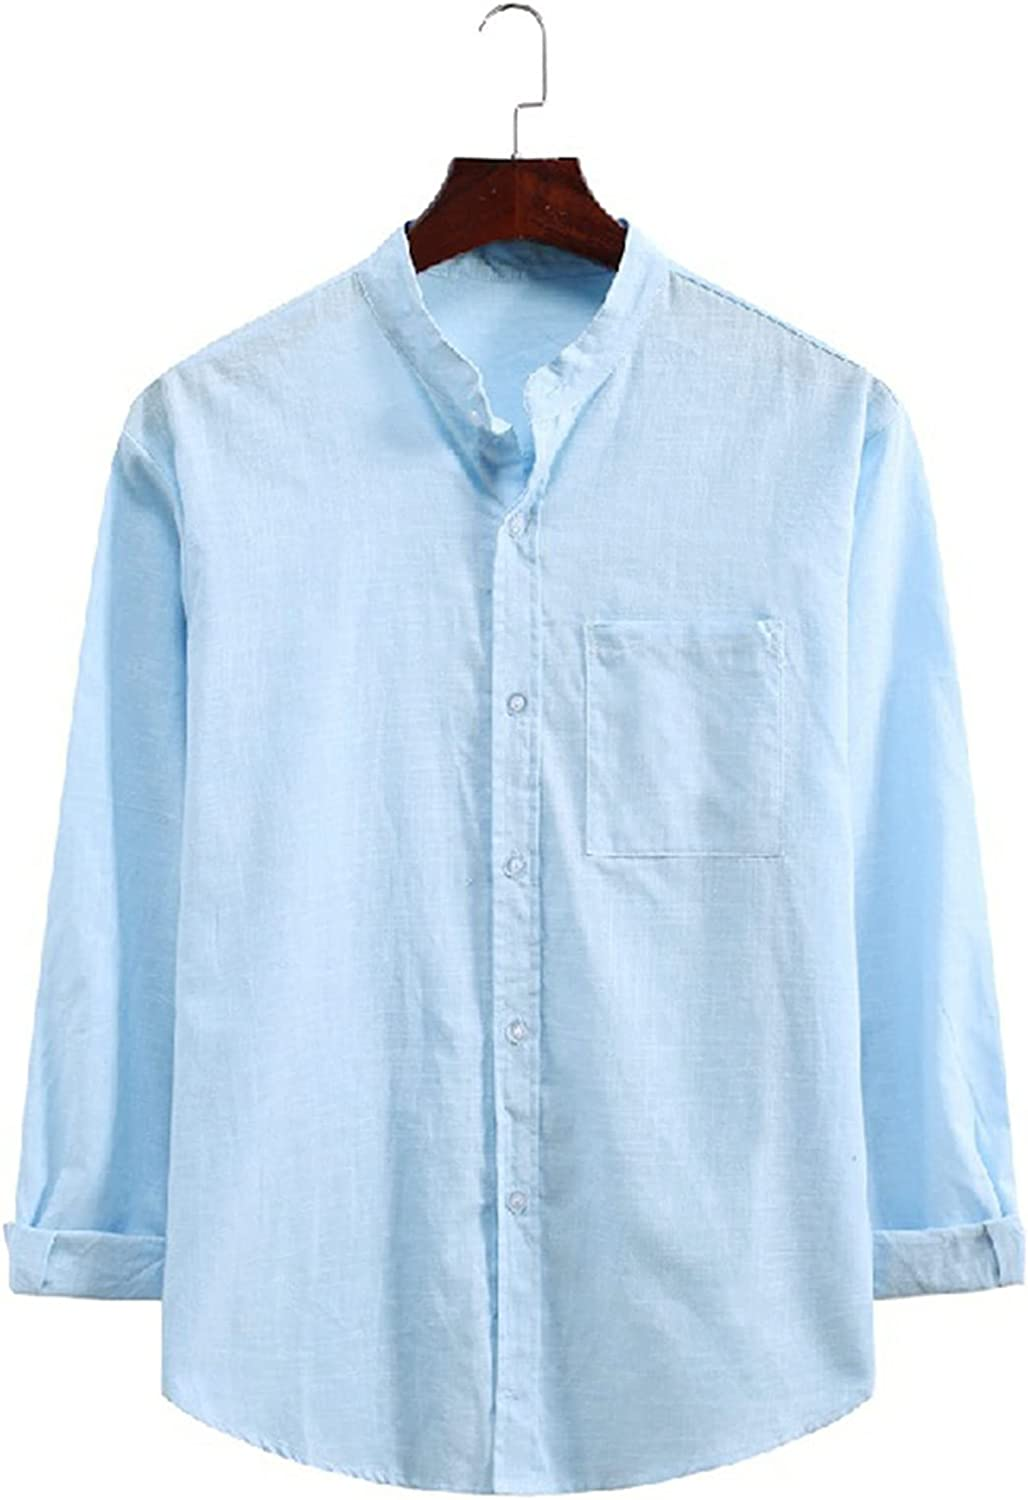 PAOGE Men's Casual Solid Color Lapel Striped Long-Sleeved Shirt Top Blouse